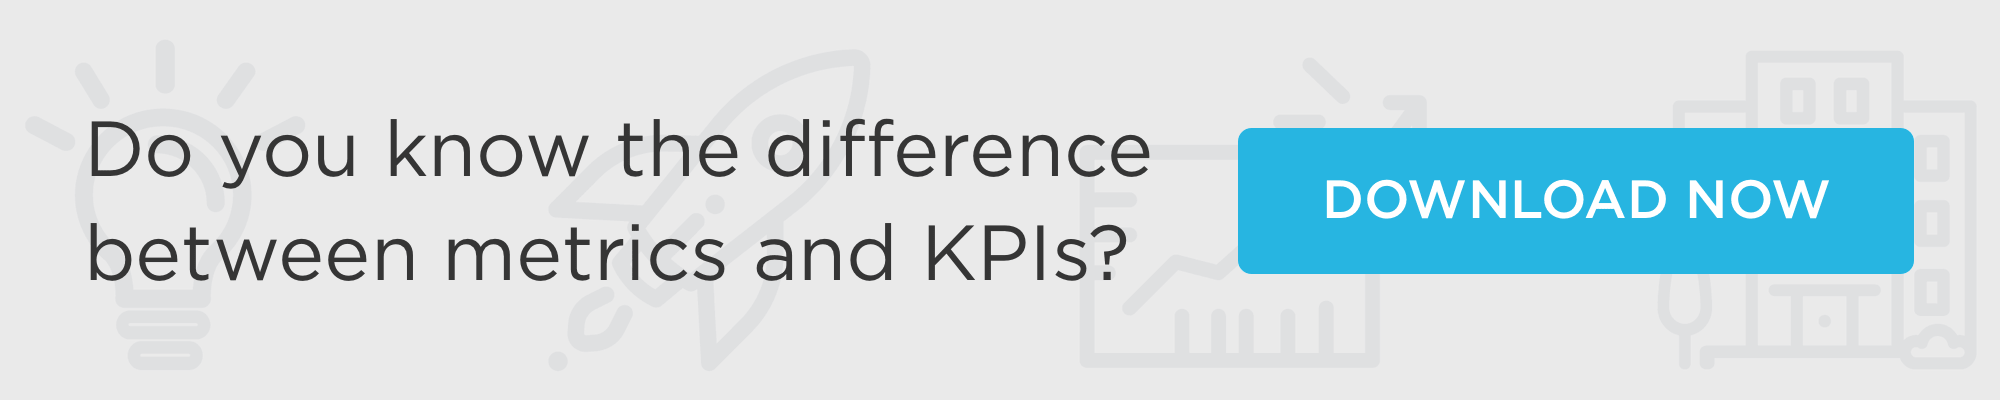 download the metrics vs. kpis infographic